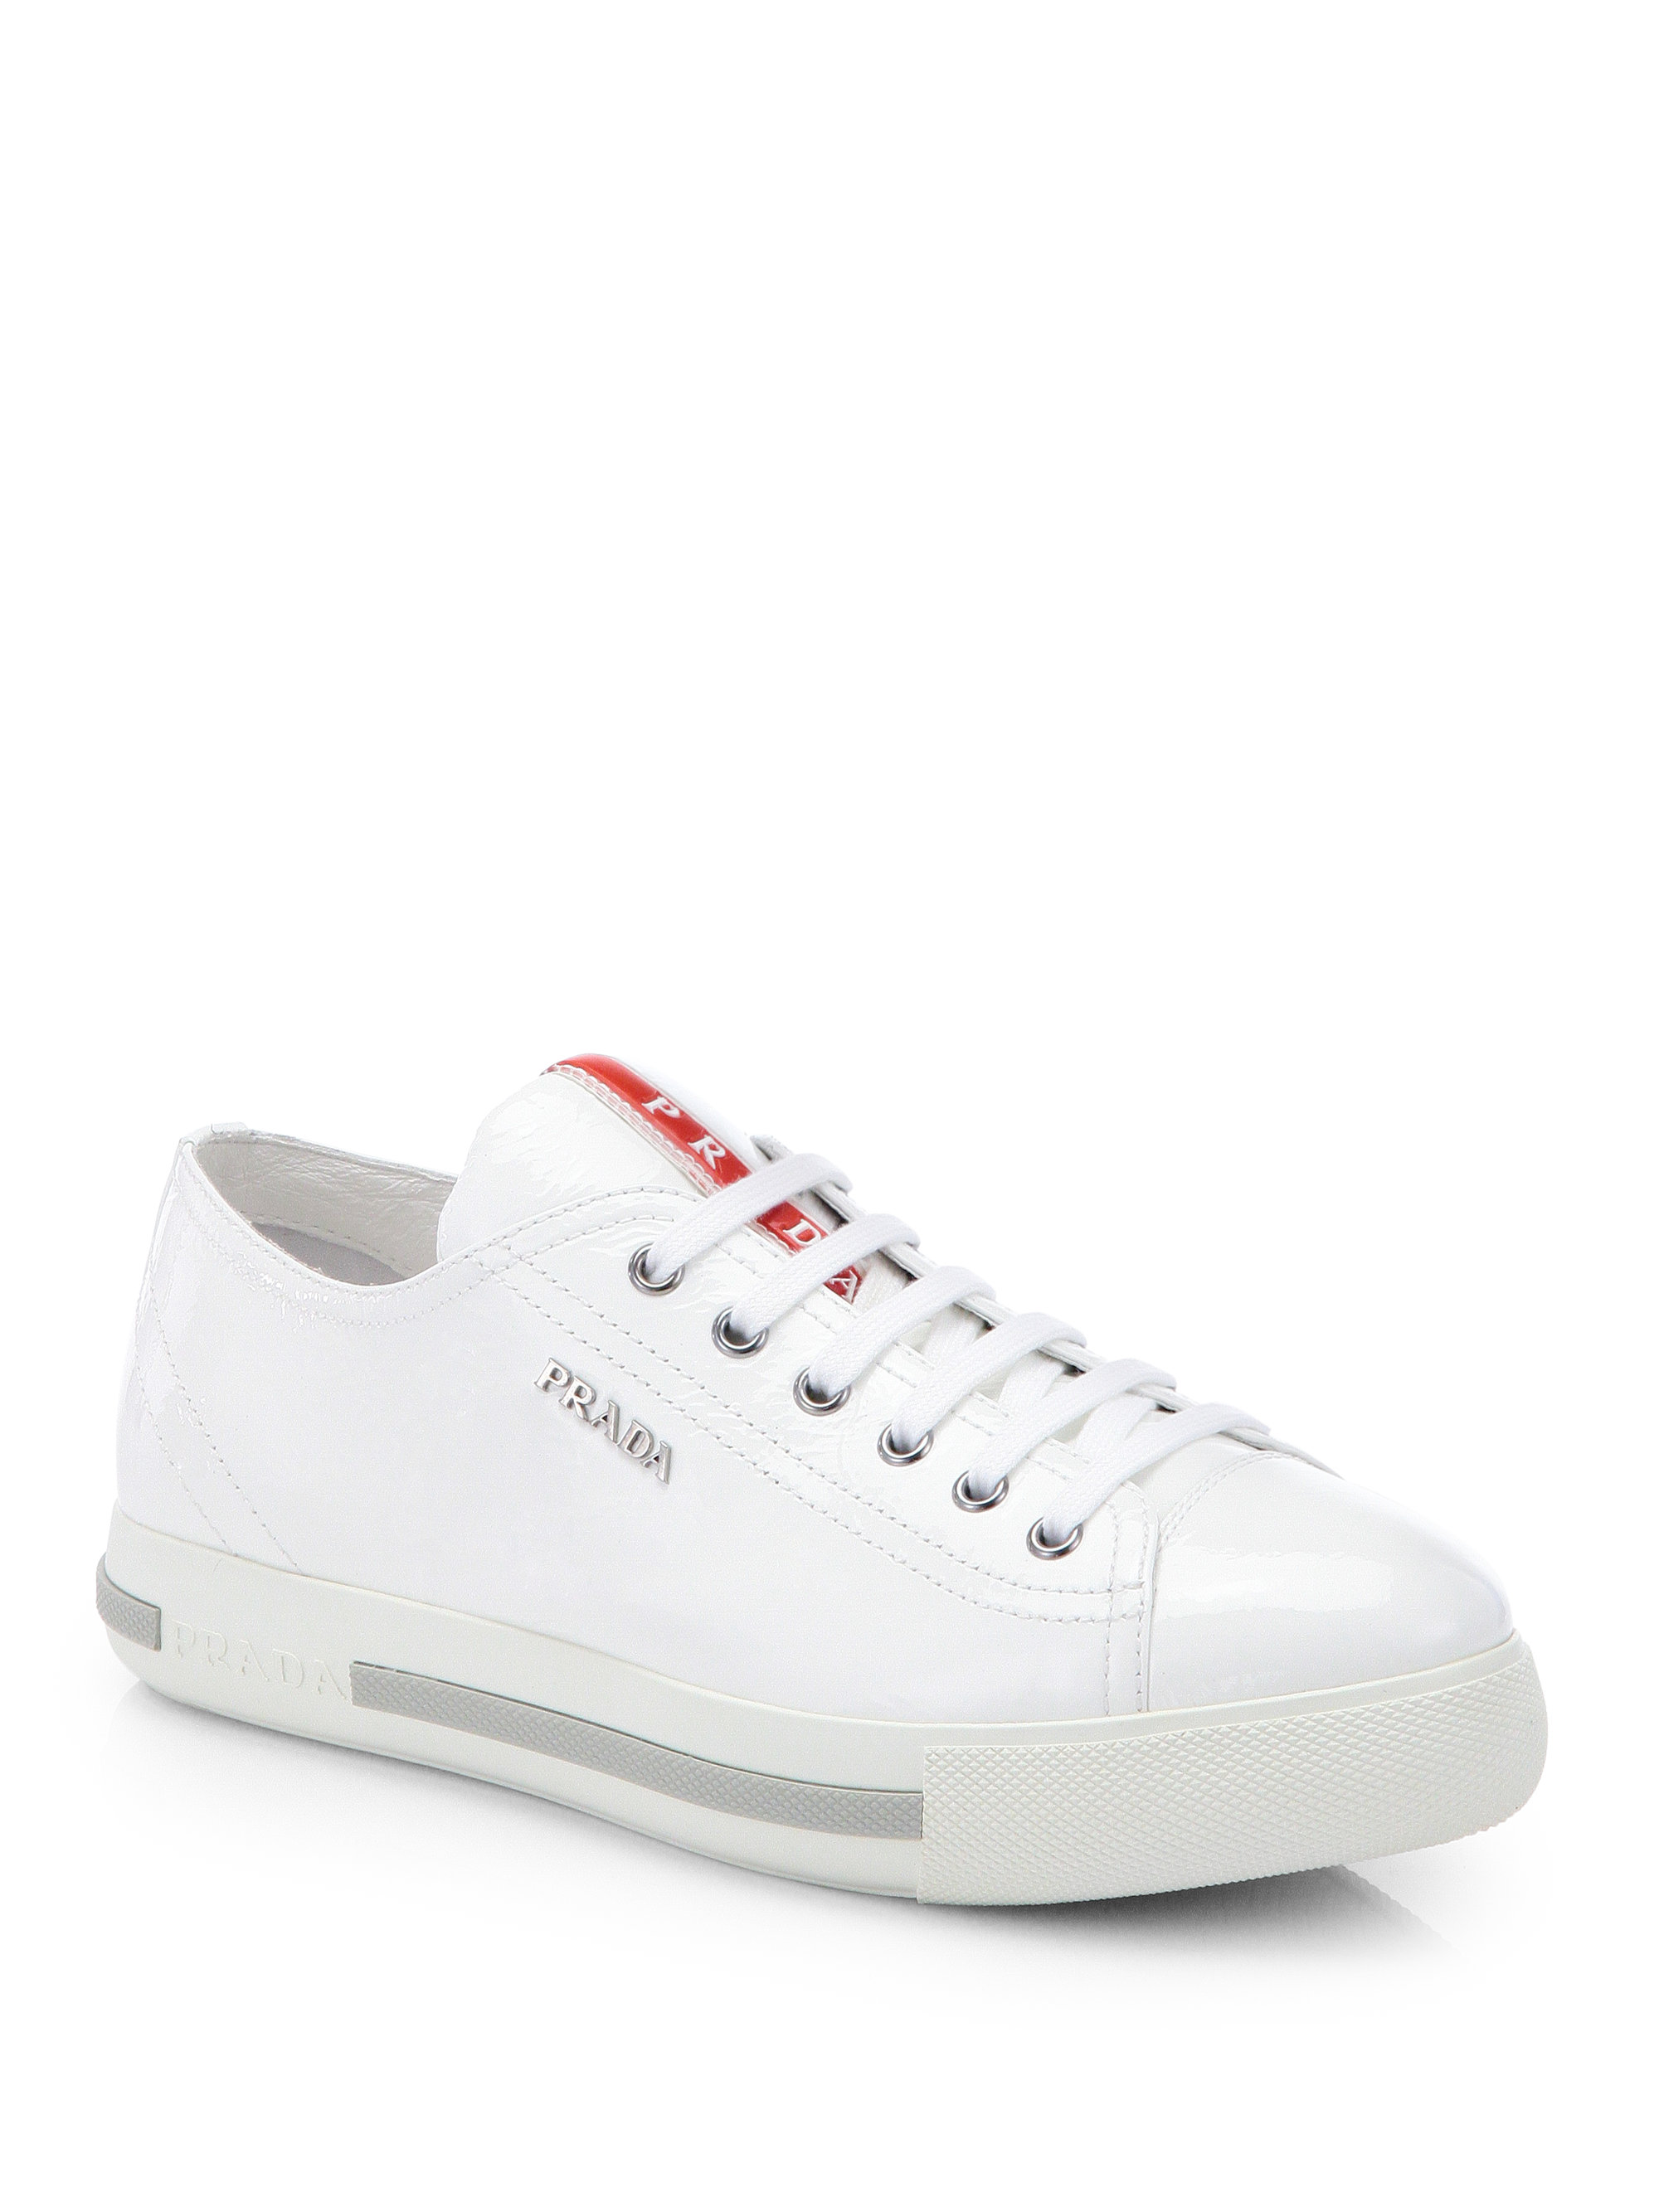 Sneakers In White Patent Lowtop Lyst Prada Leather CsxthQrBd